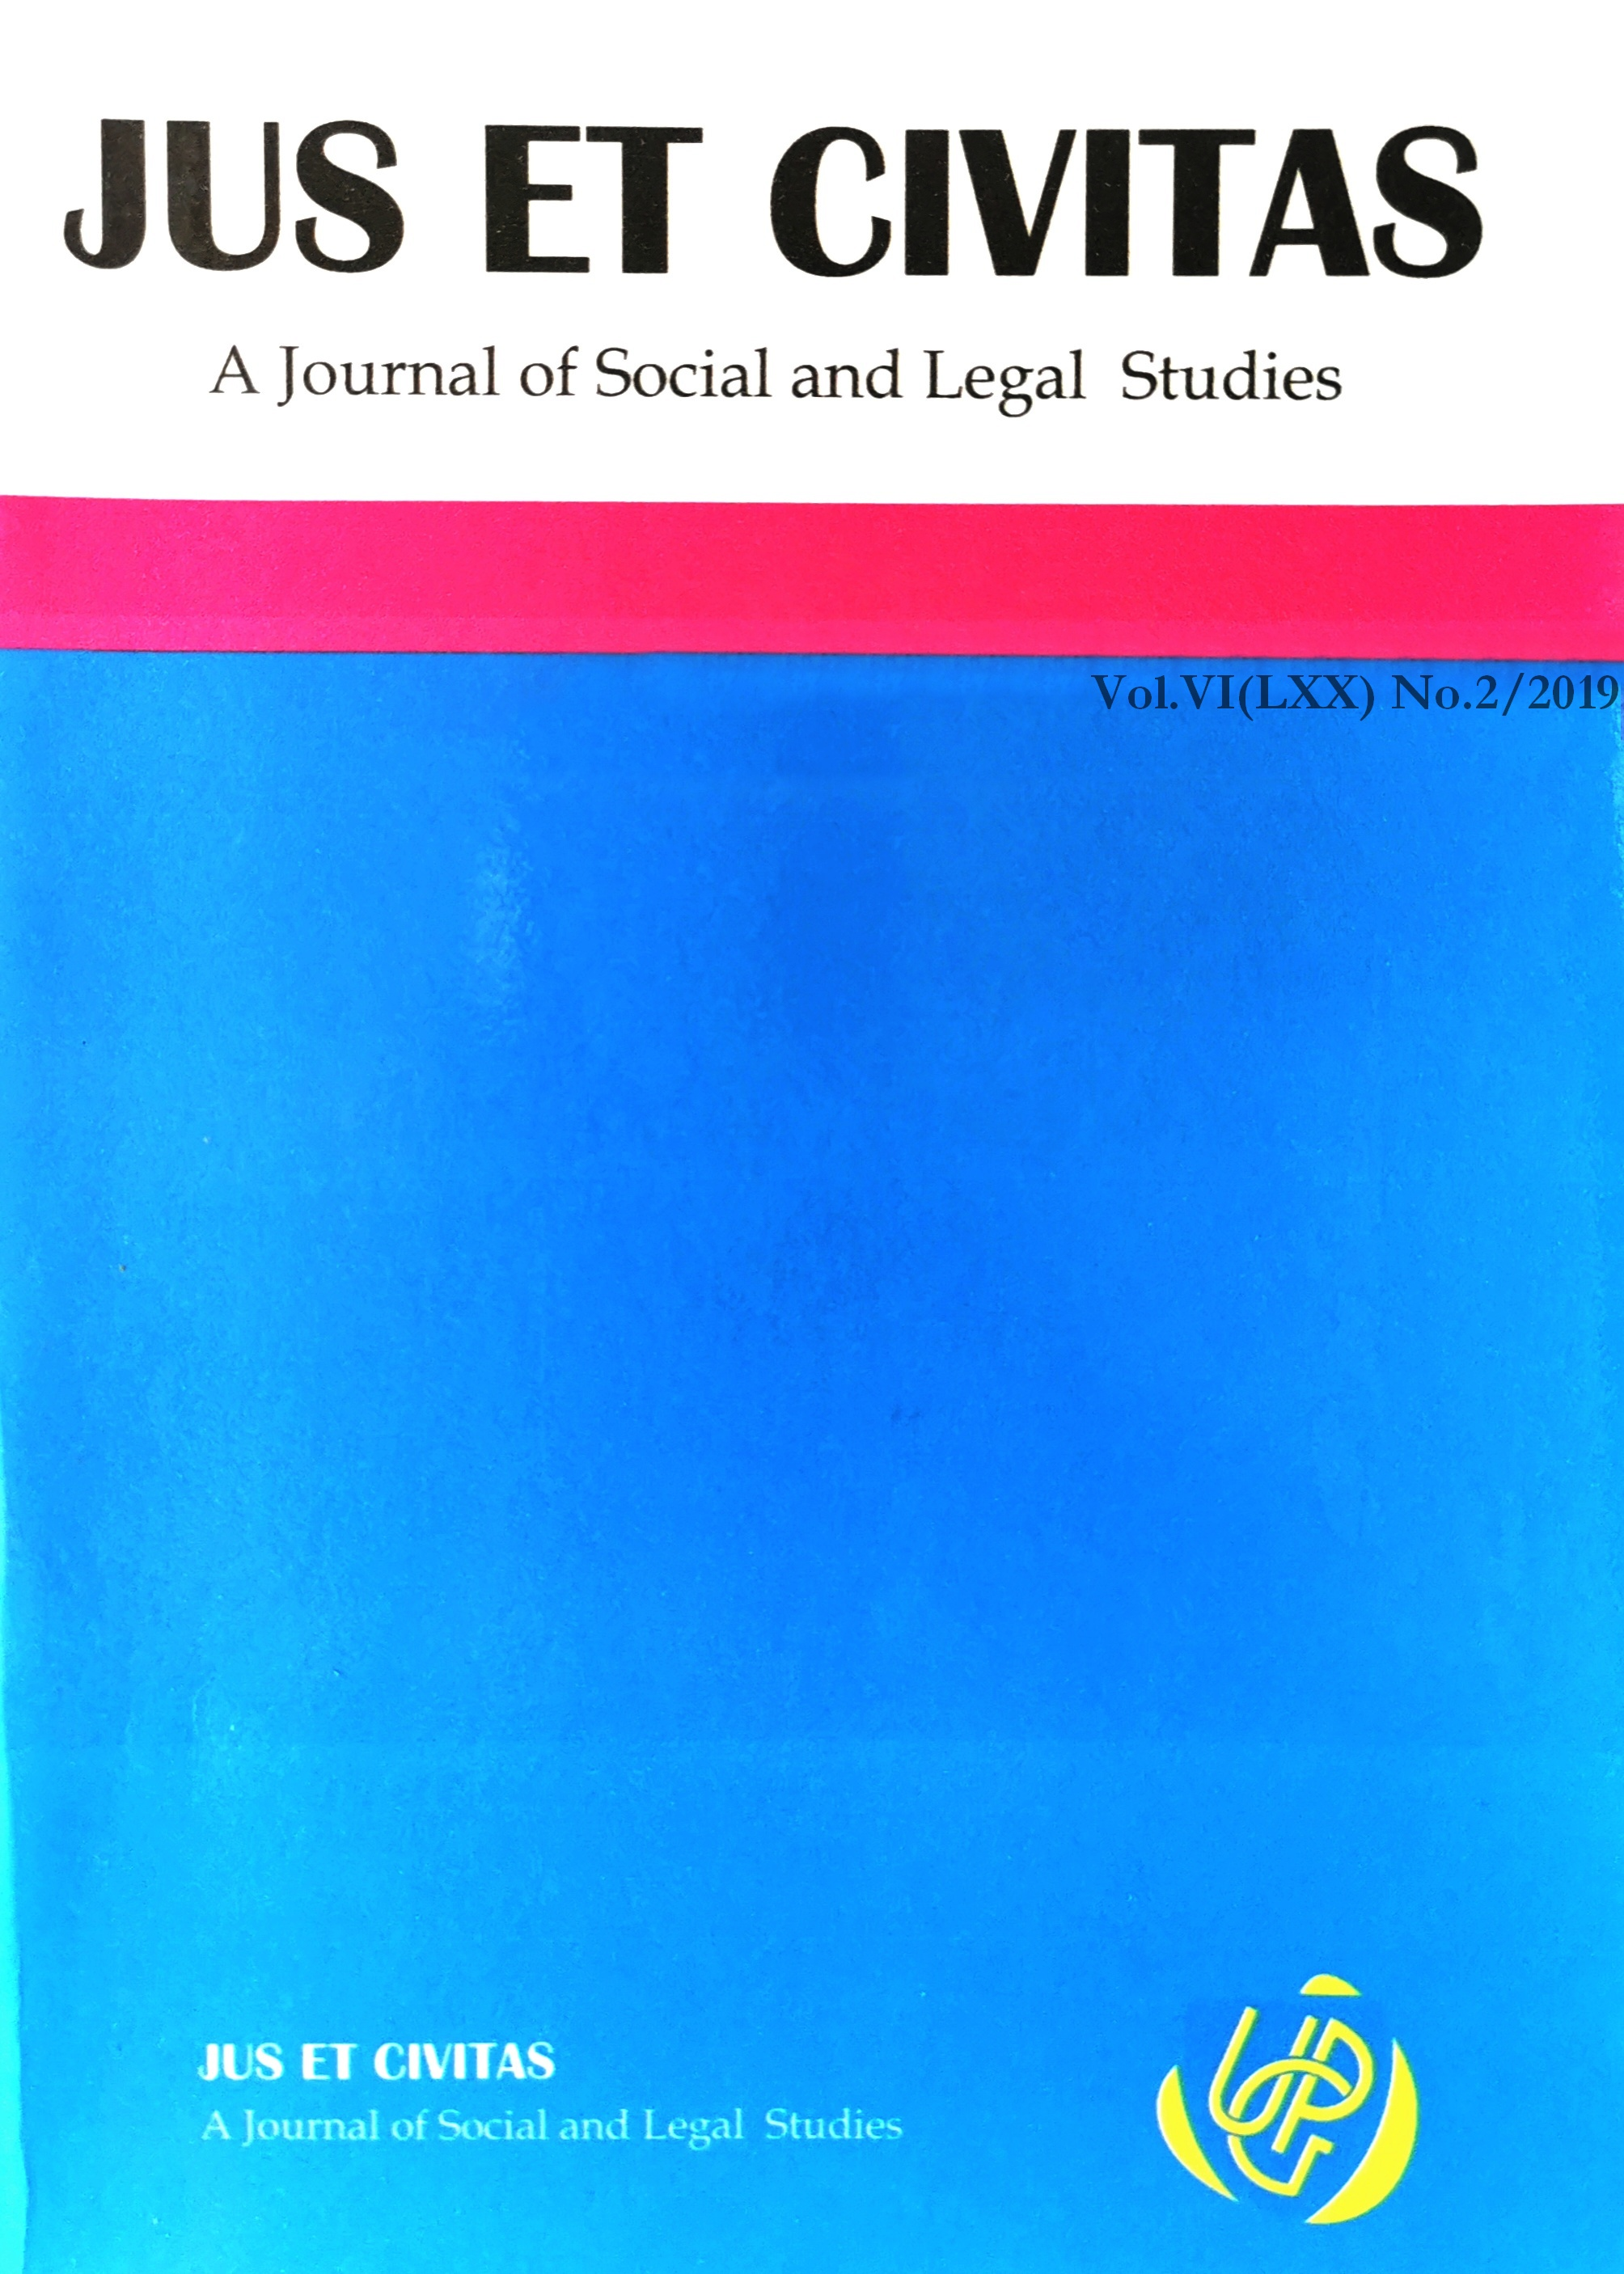 Jus et Civitas - A Journal of Social and Legal Studies Cover Image